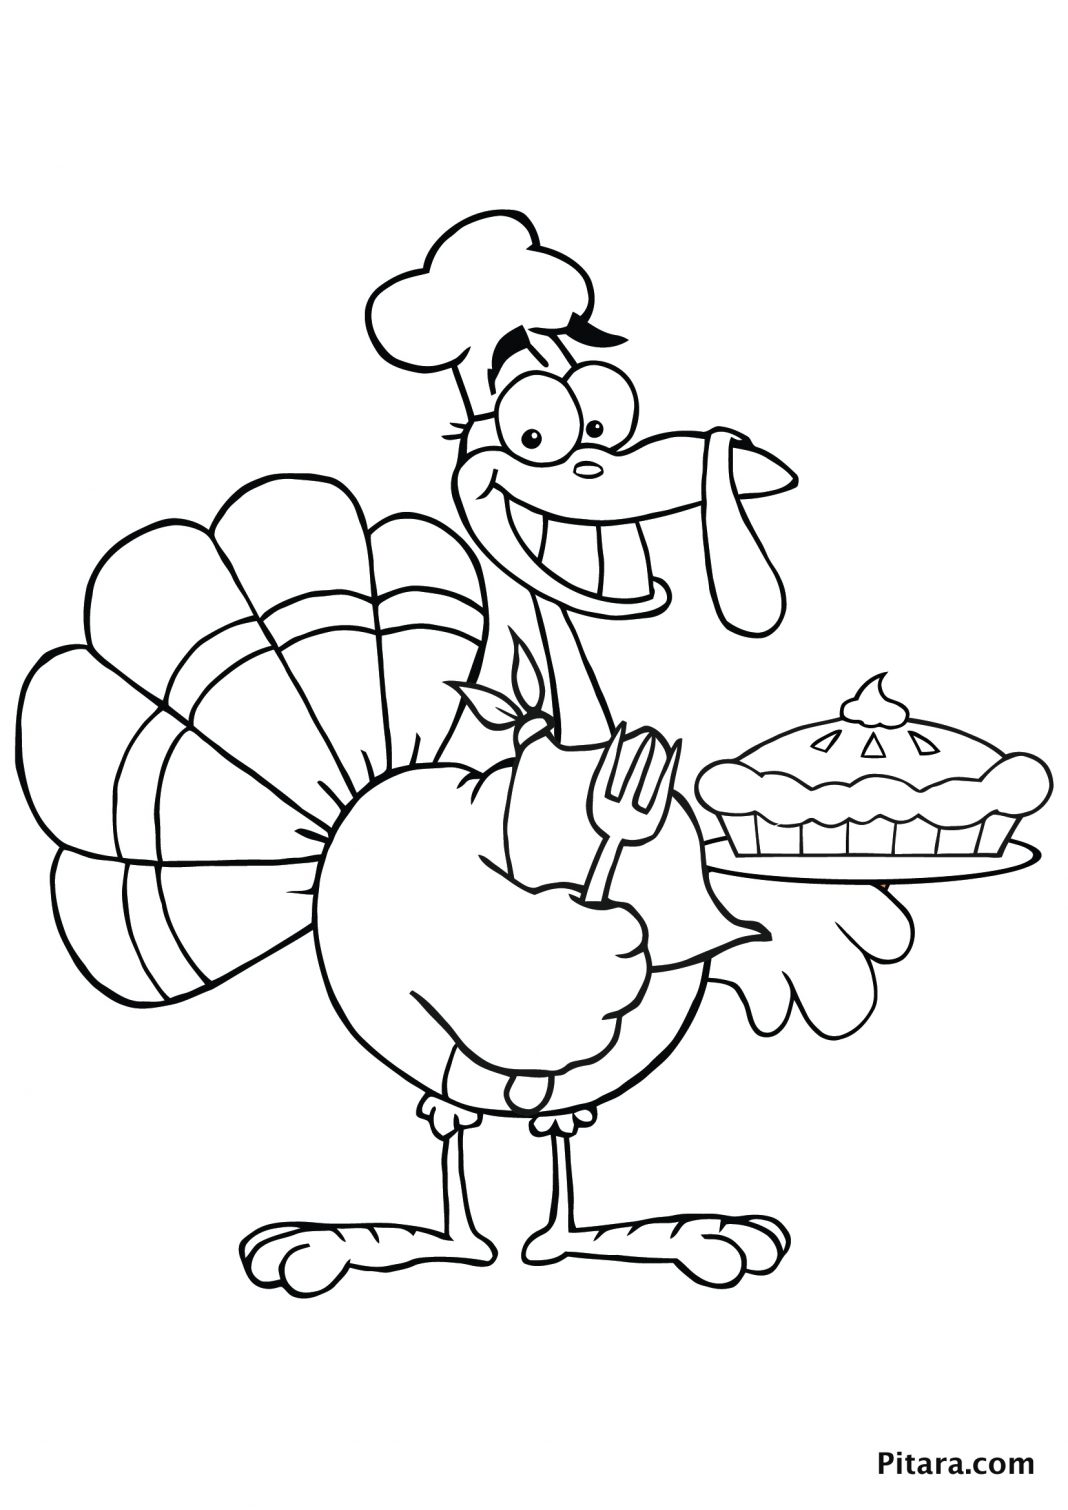 1068x1510 Turkey Coloring Pages For Kids Pitara Kids Network